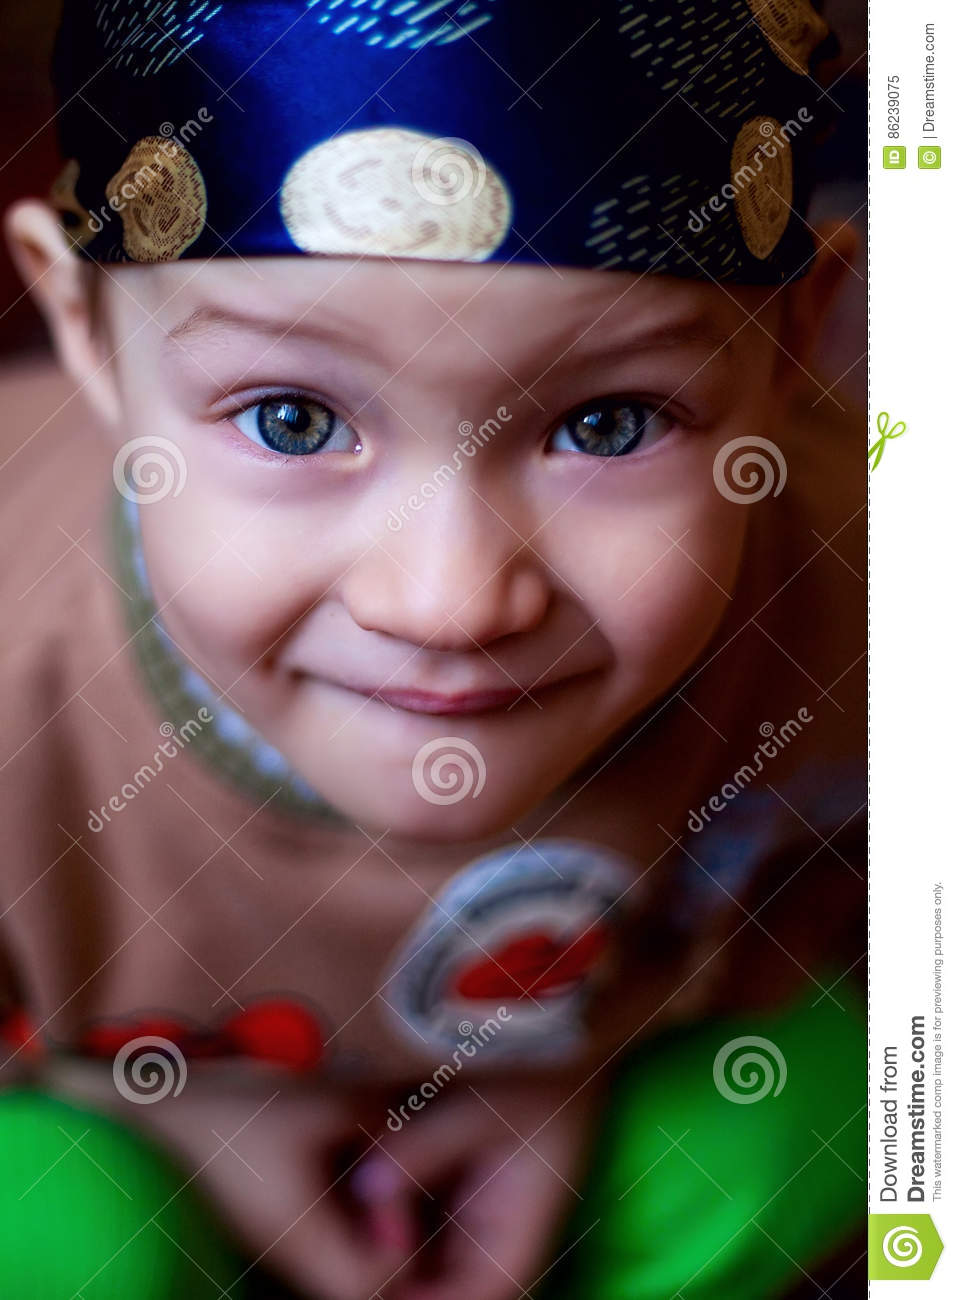 Little boy looking at the camera, blue eyes bright in the bandana